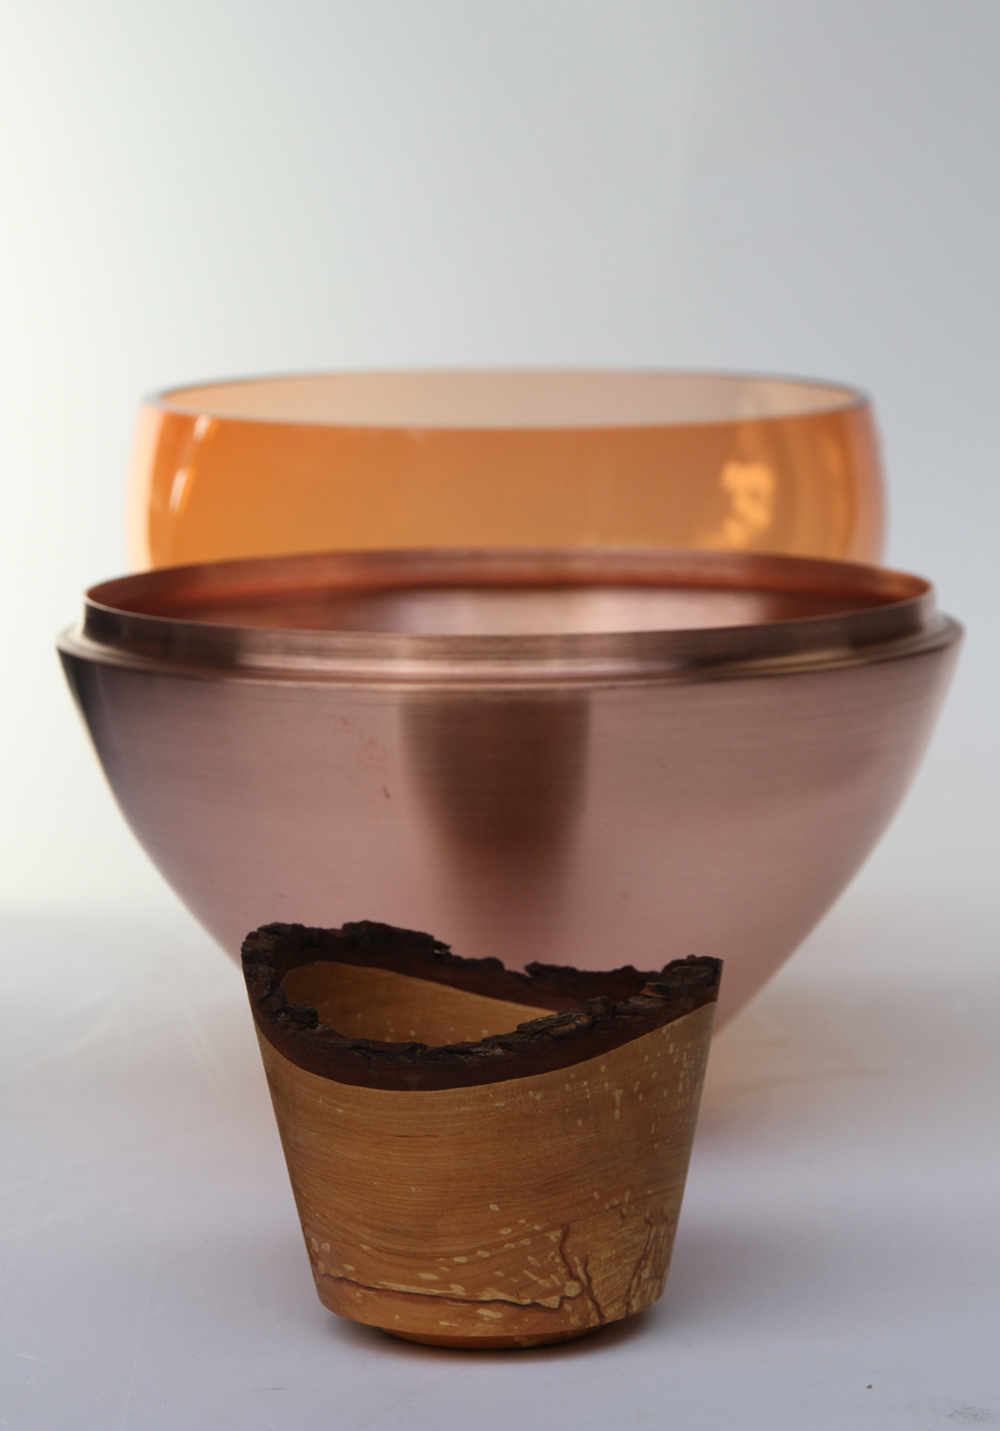 Detail Collective | Products | India Stacking Vessels | Product and images via Utopia & Utility